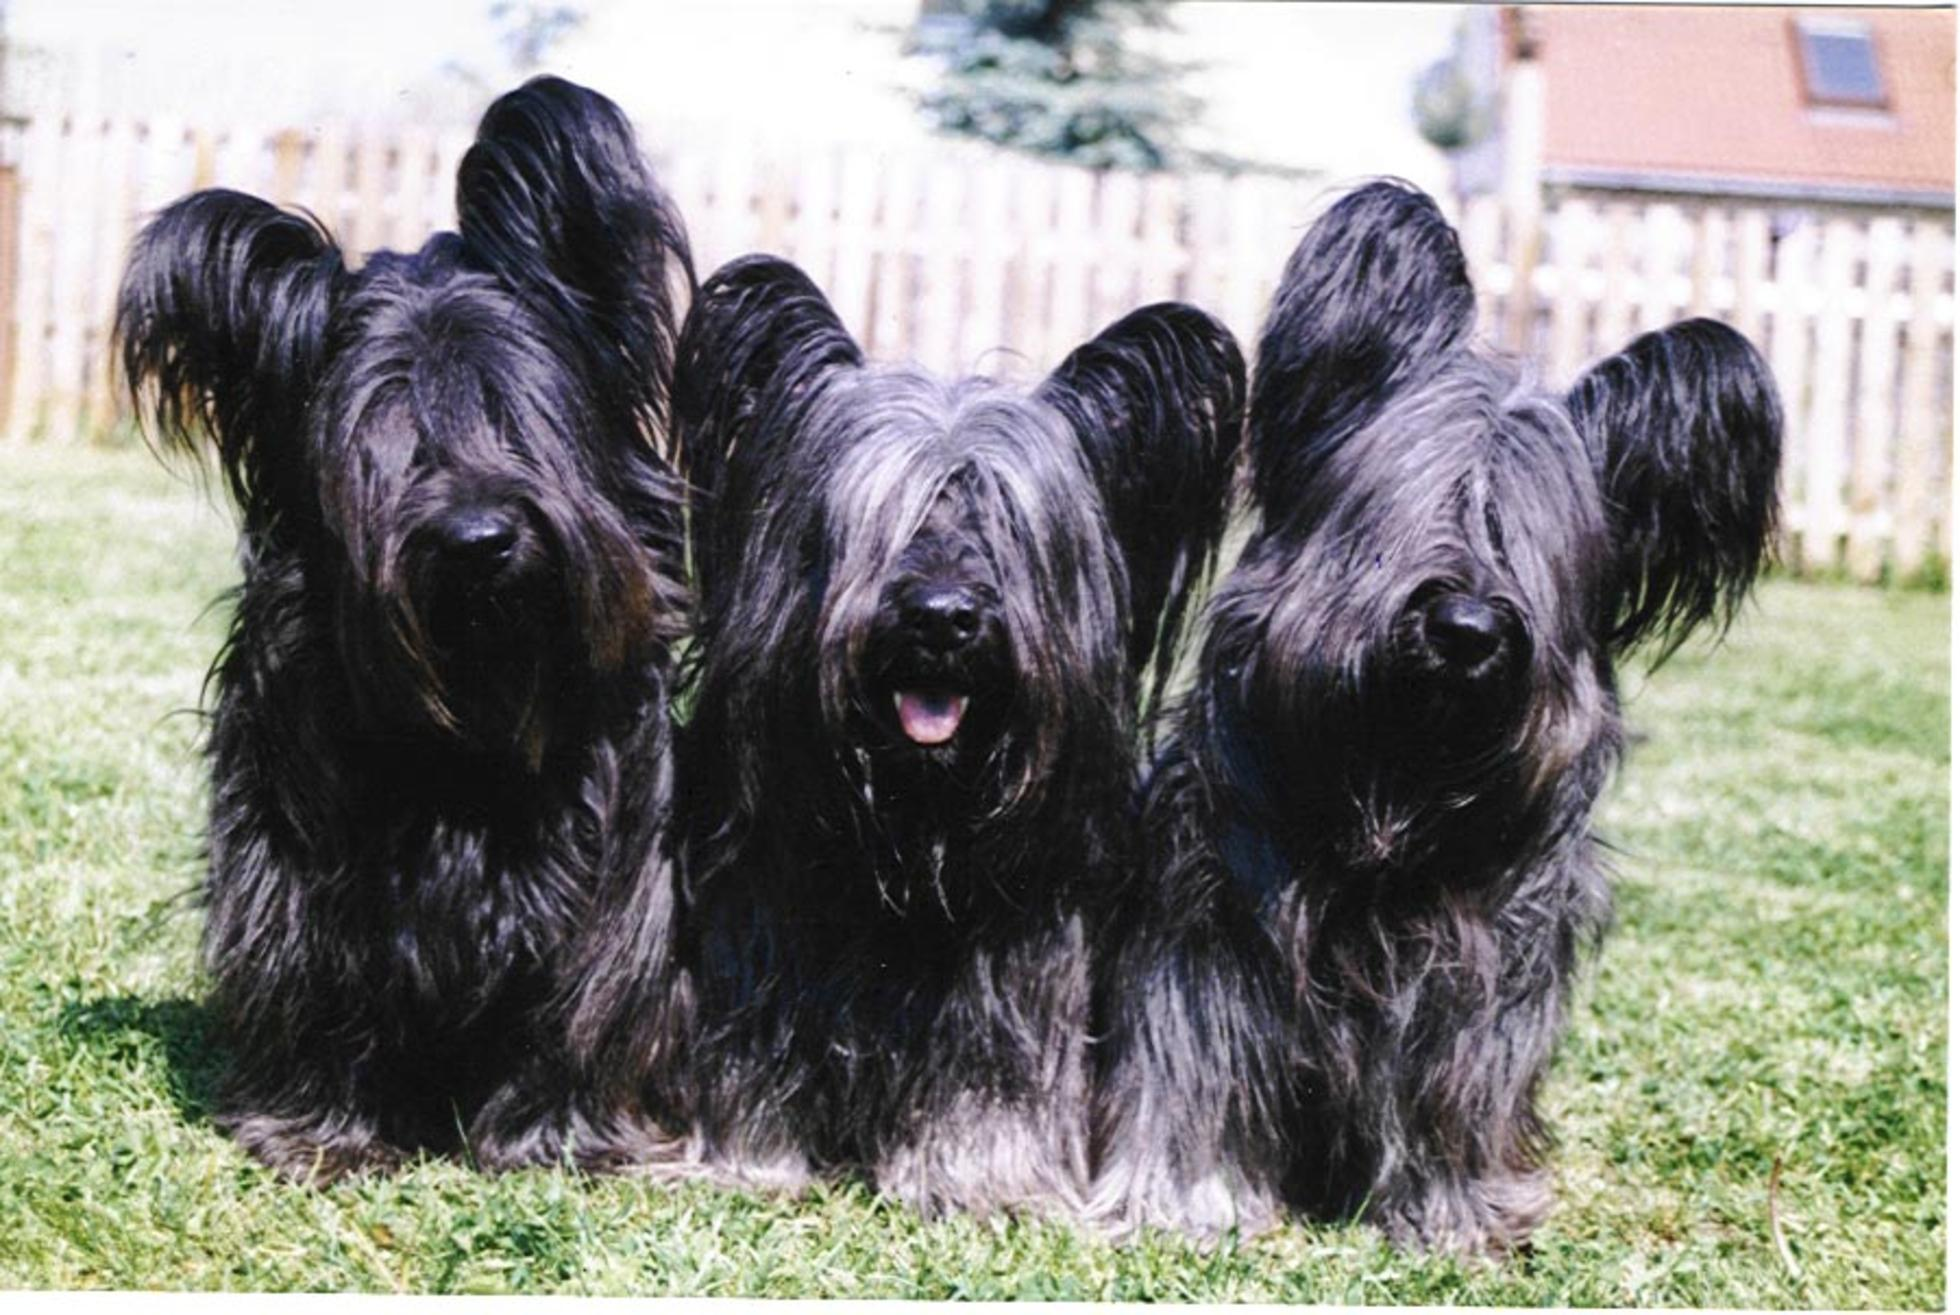 Black Skye Terrier dogs wallpaper